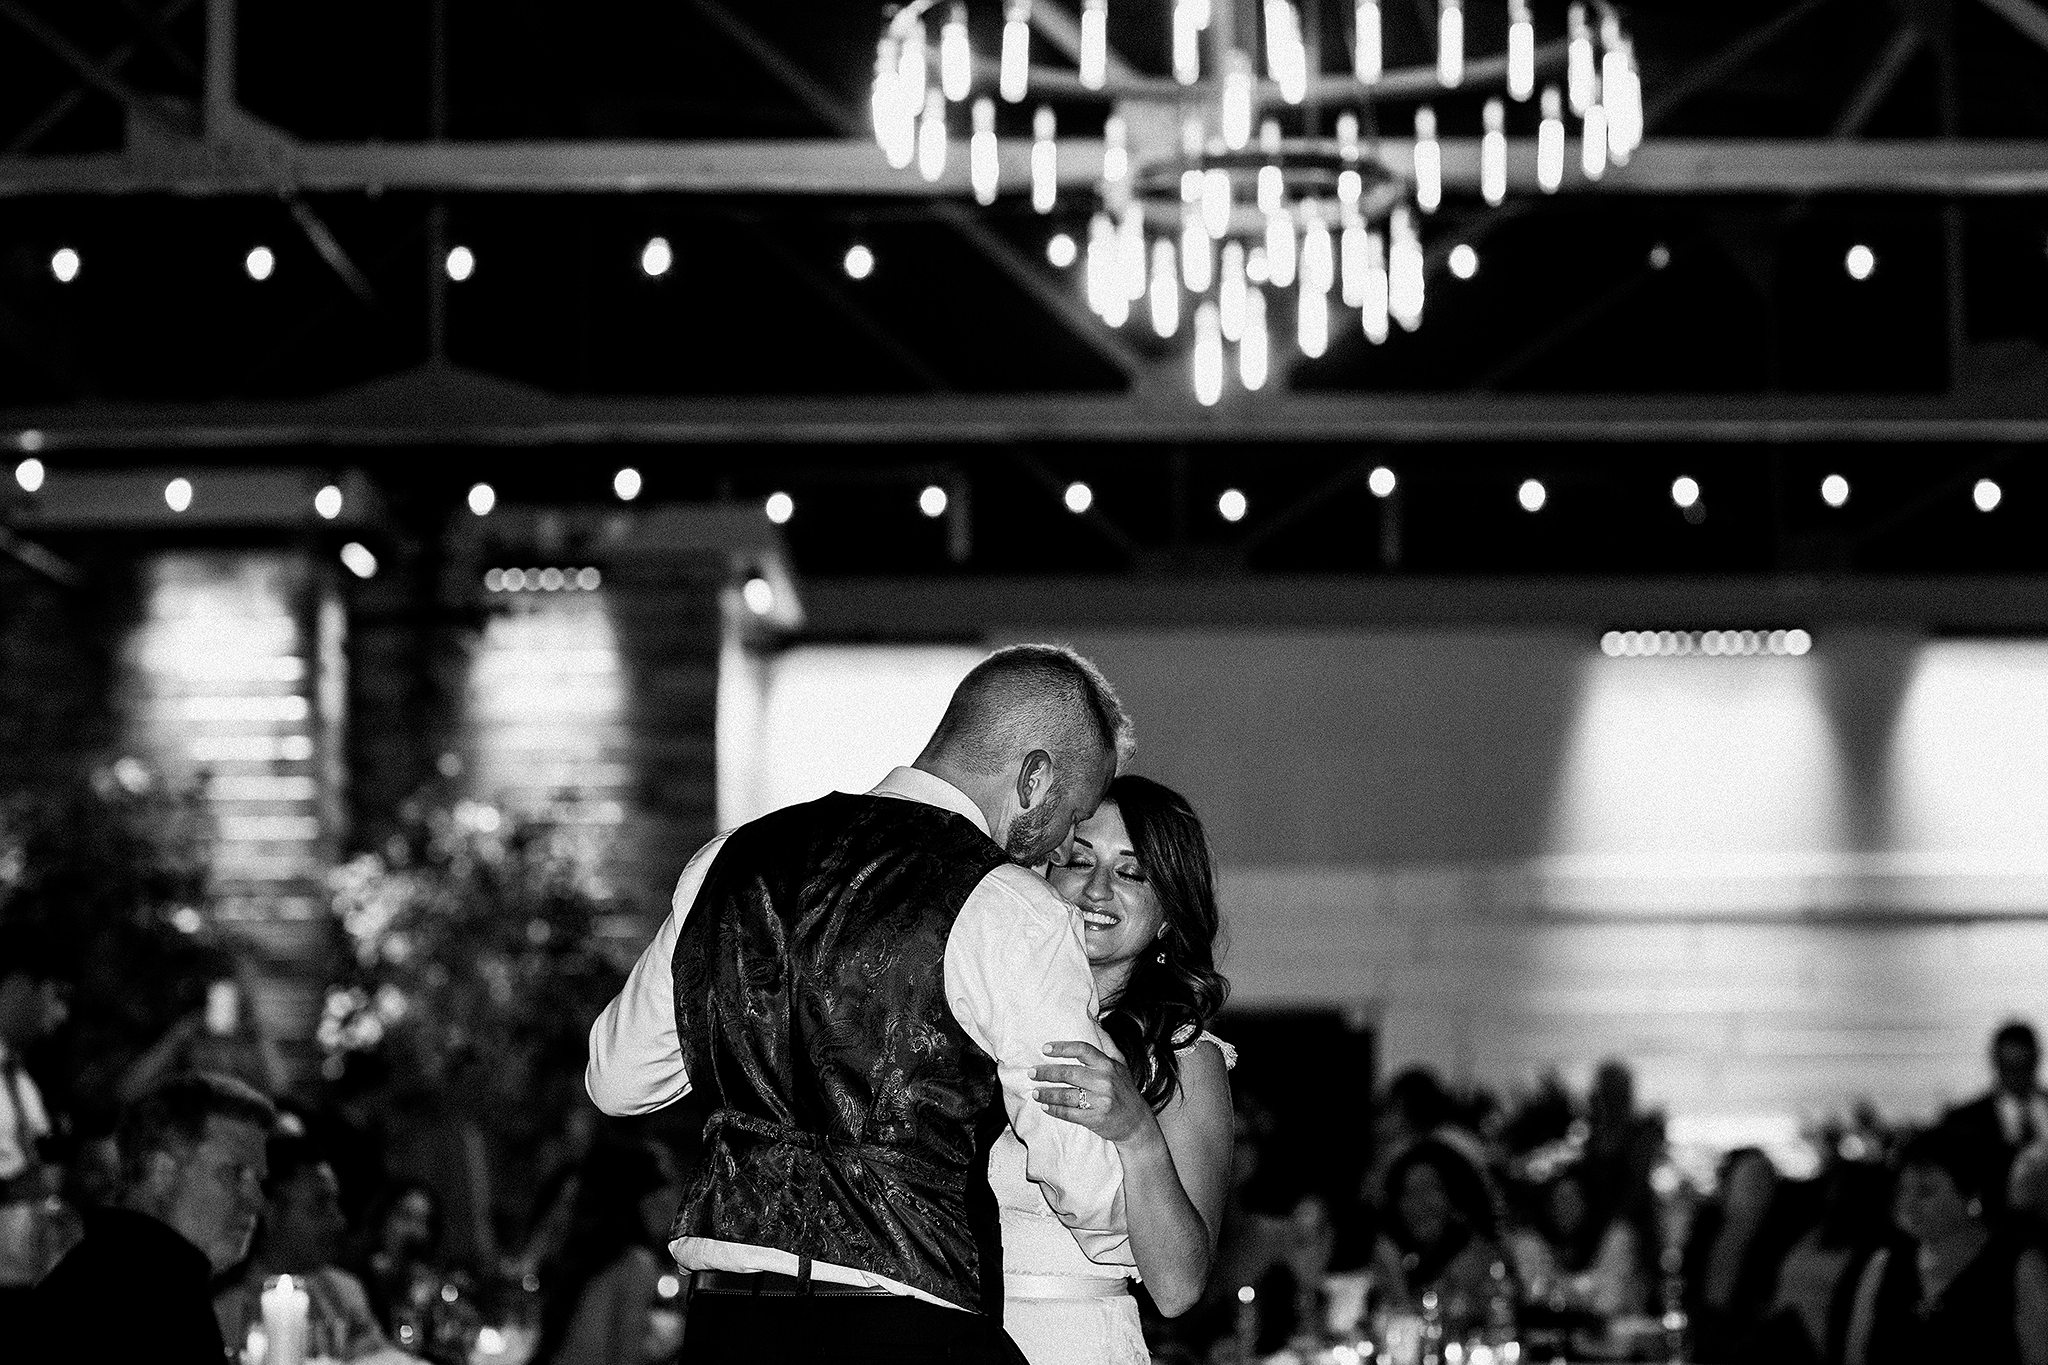 bride/groom first dance | the ivy house milwaukee wedding photographer | chrissy deming